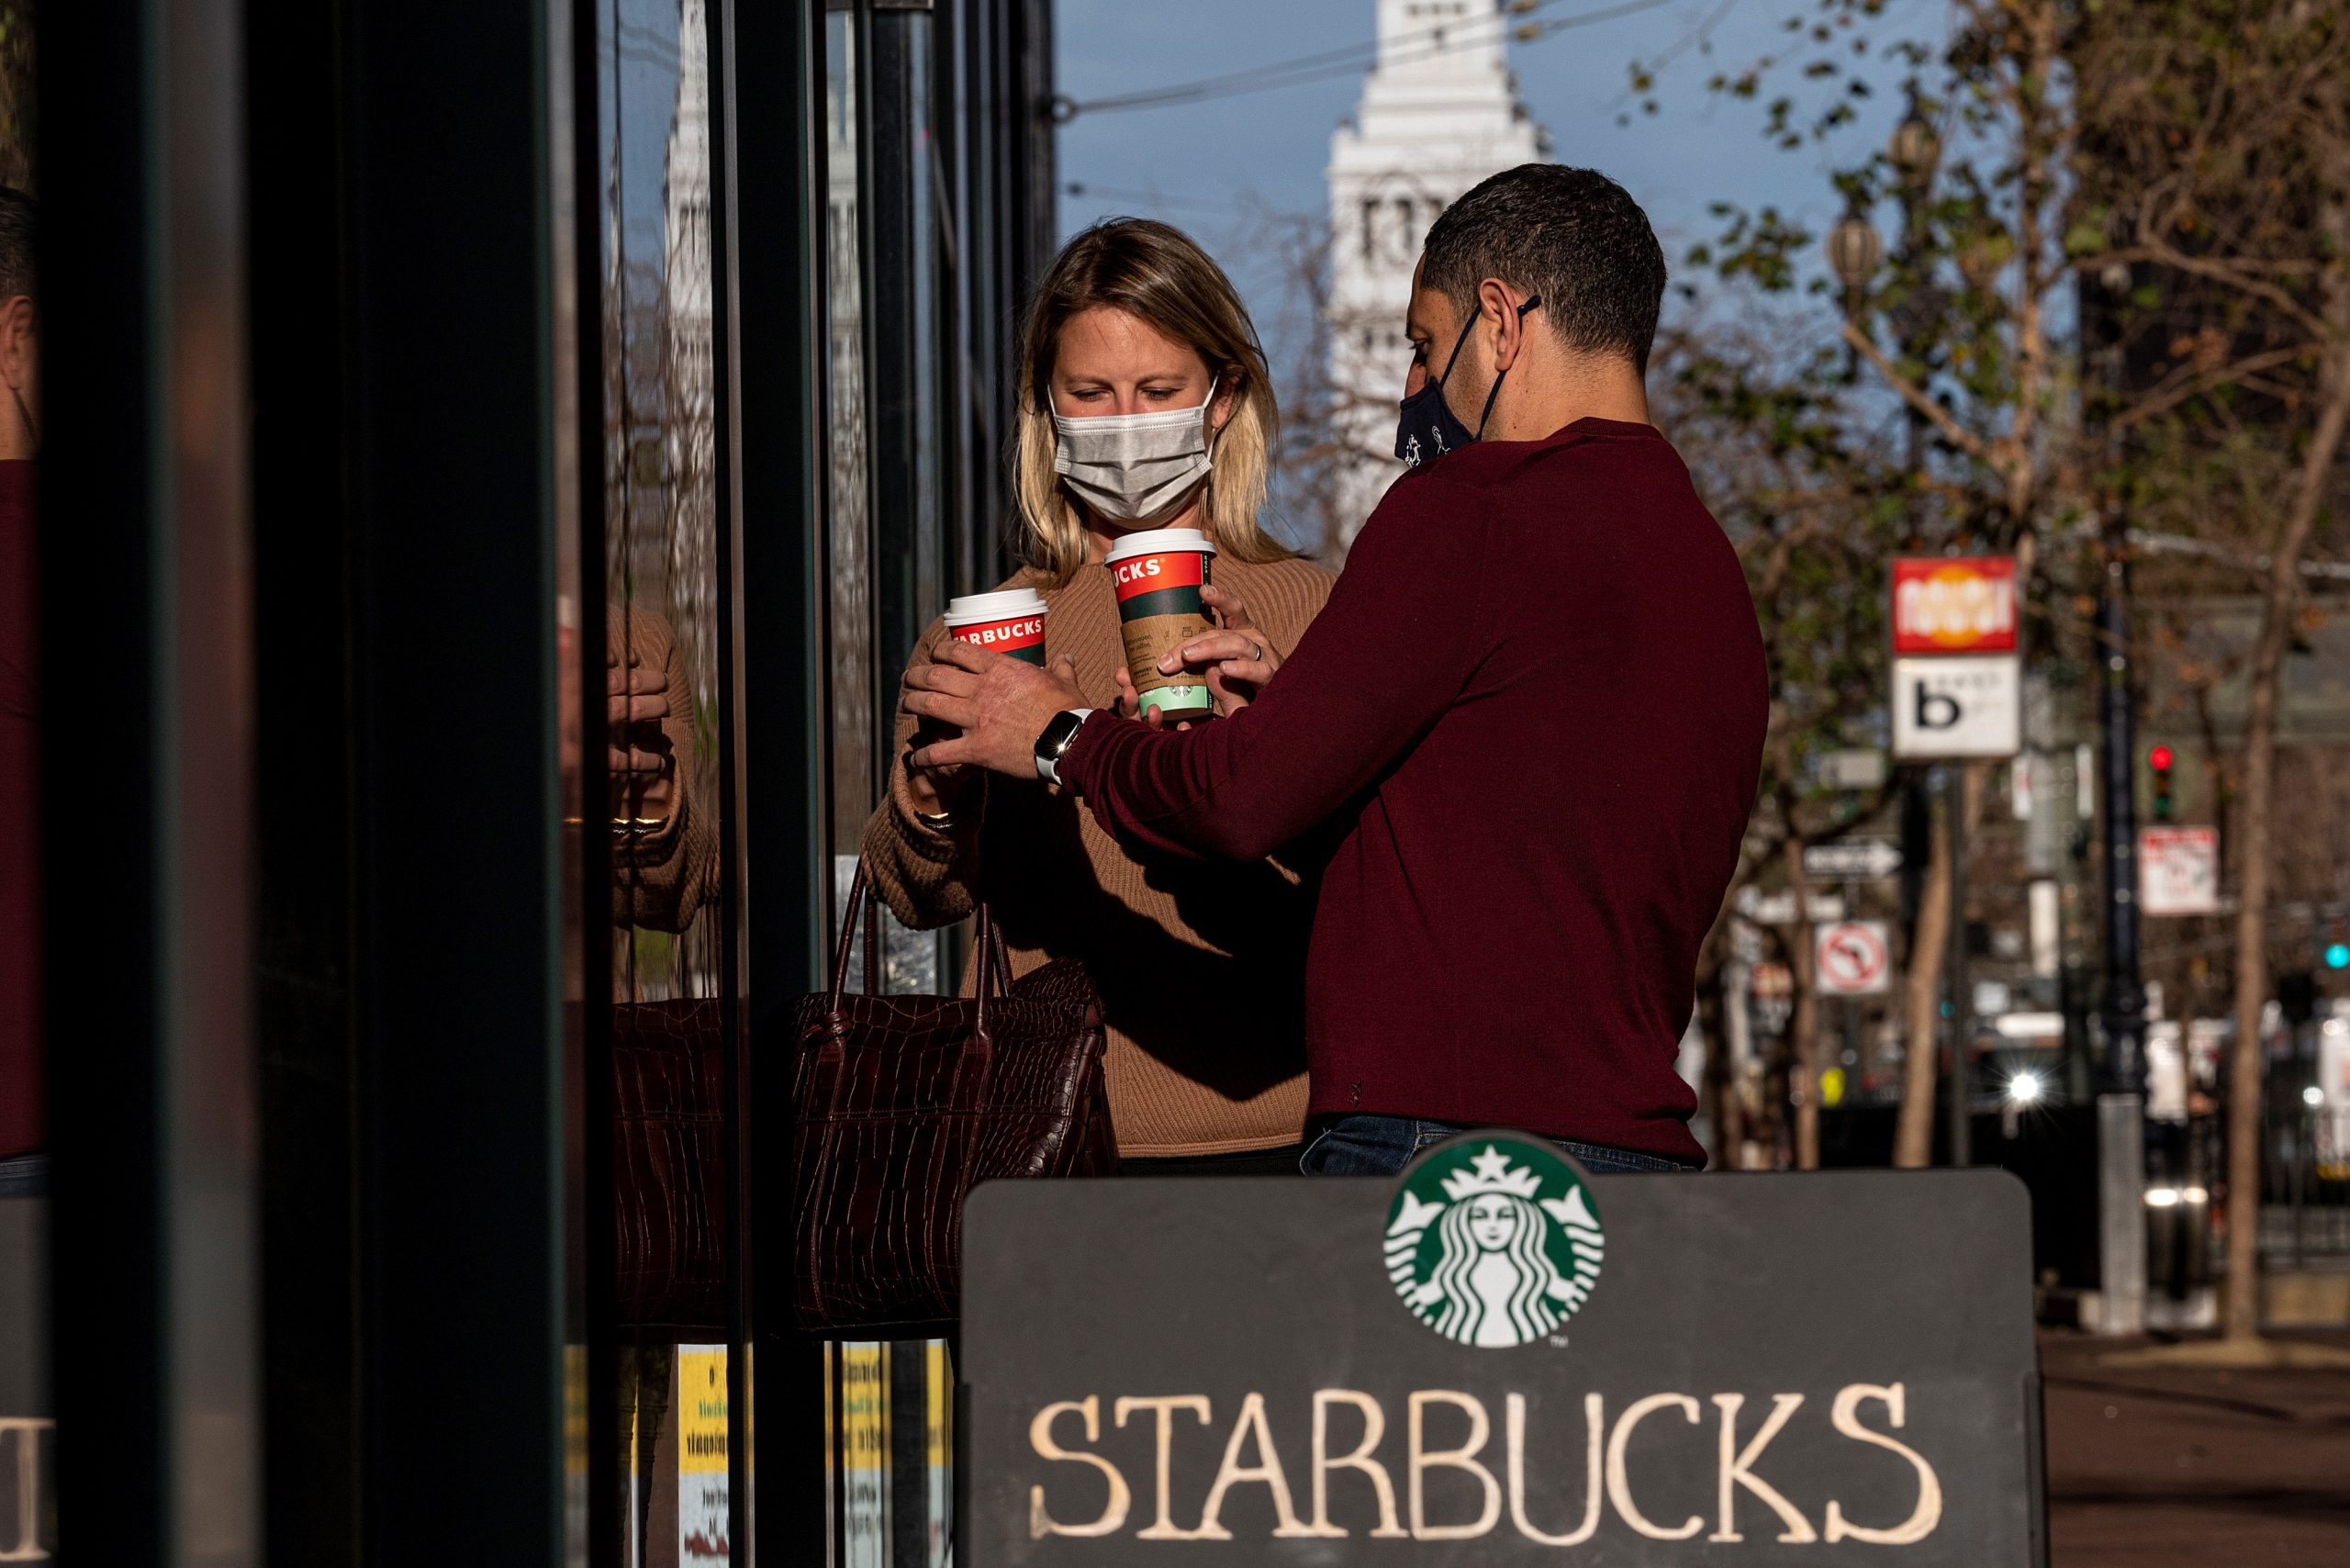 People wearing protective masks hold beverages outside a Starbucks coffee shop in San Francisco, California.